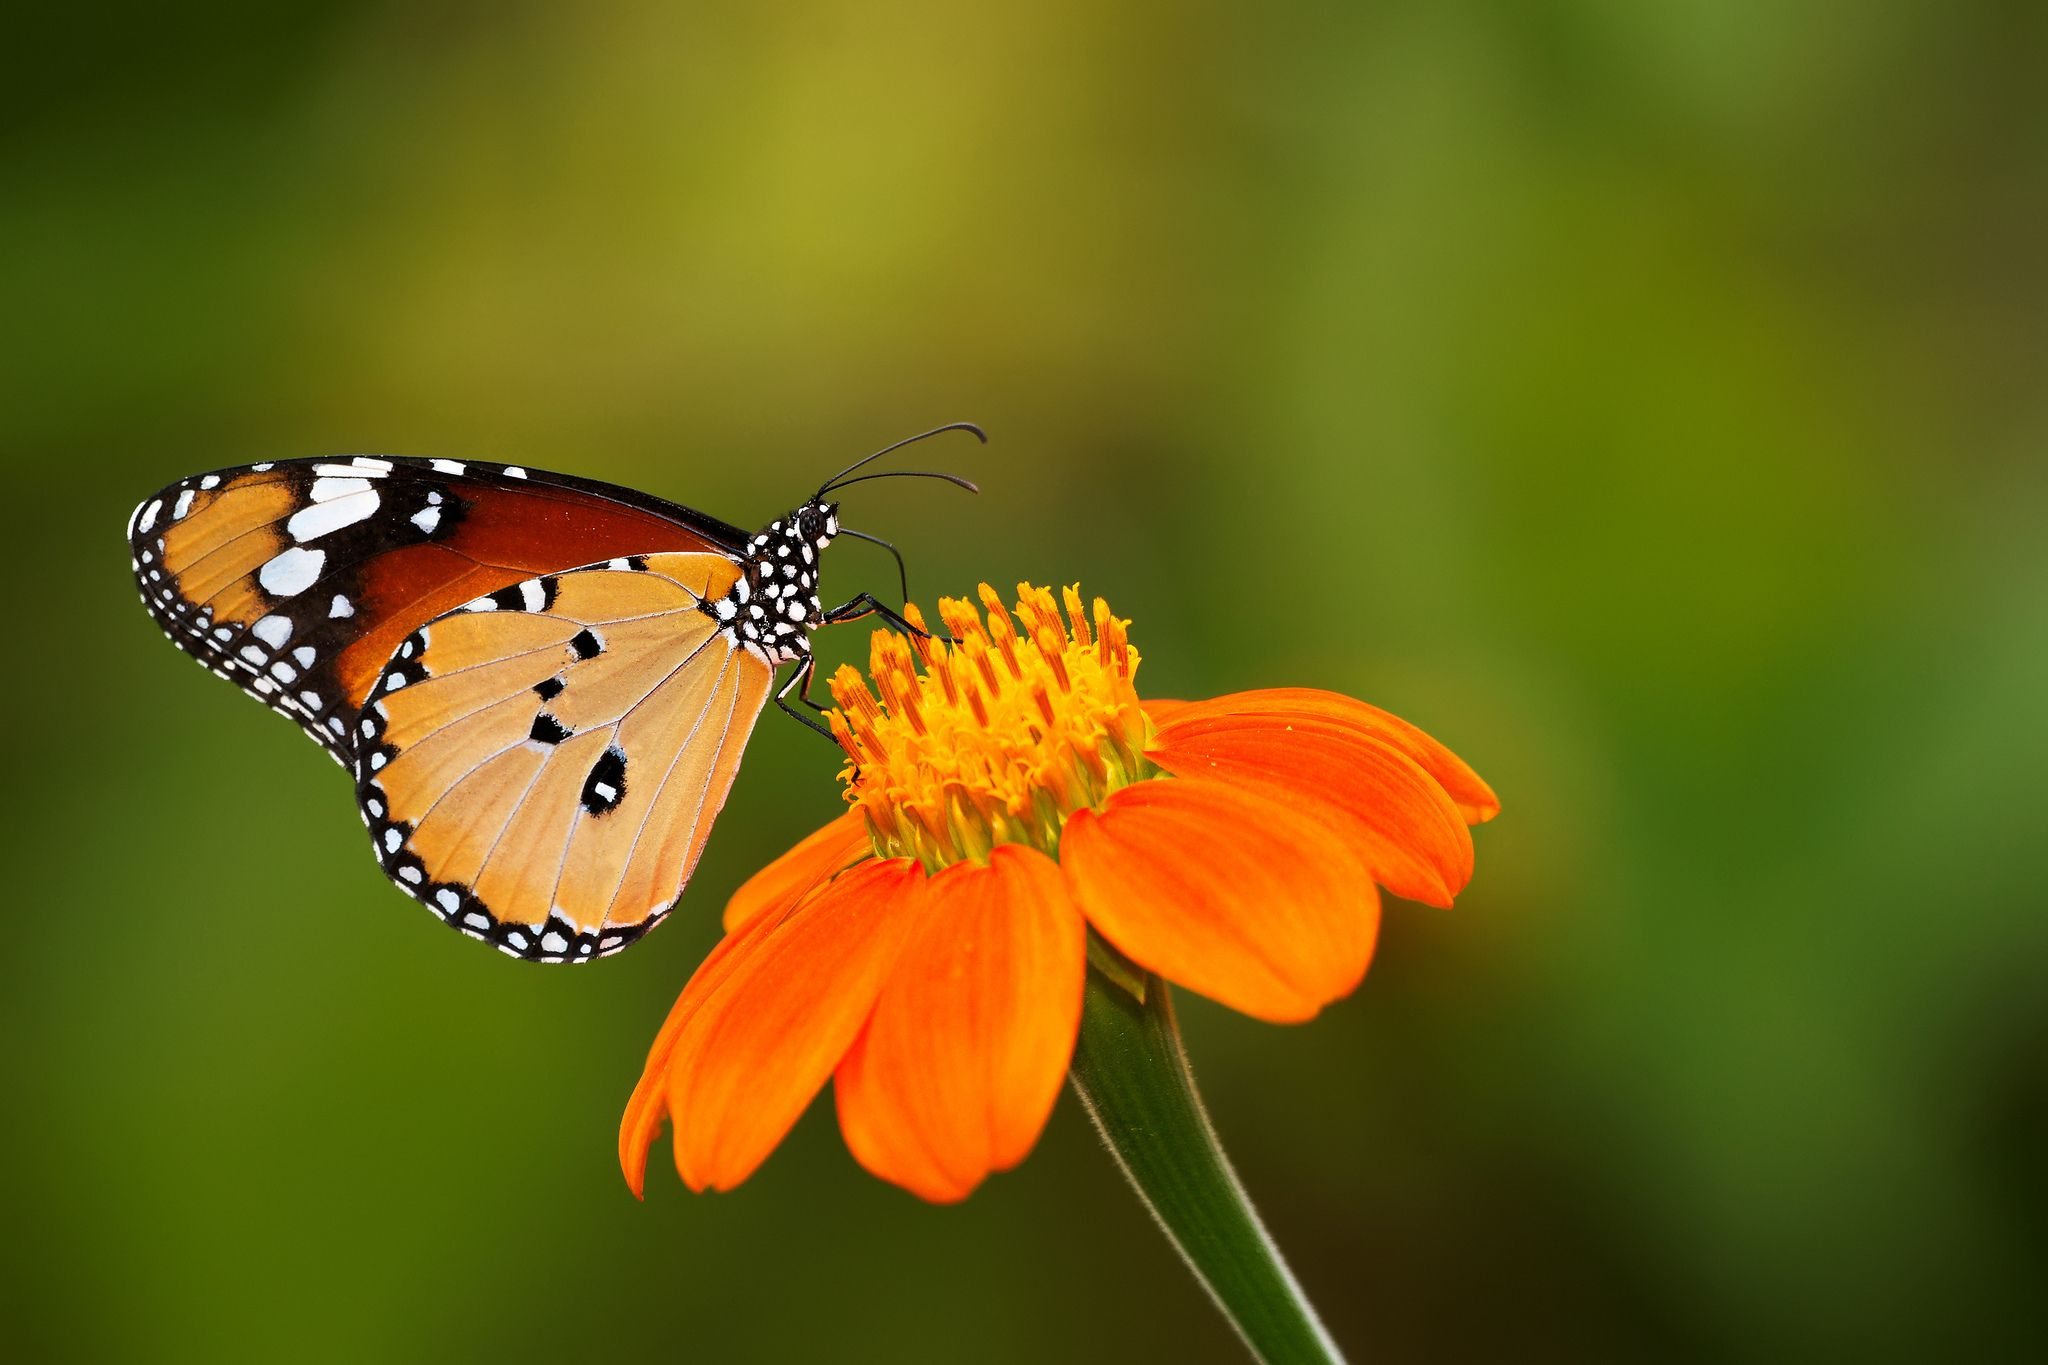 Butterfly Hd Widescreen Wallpapers For Free